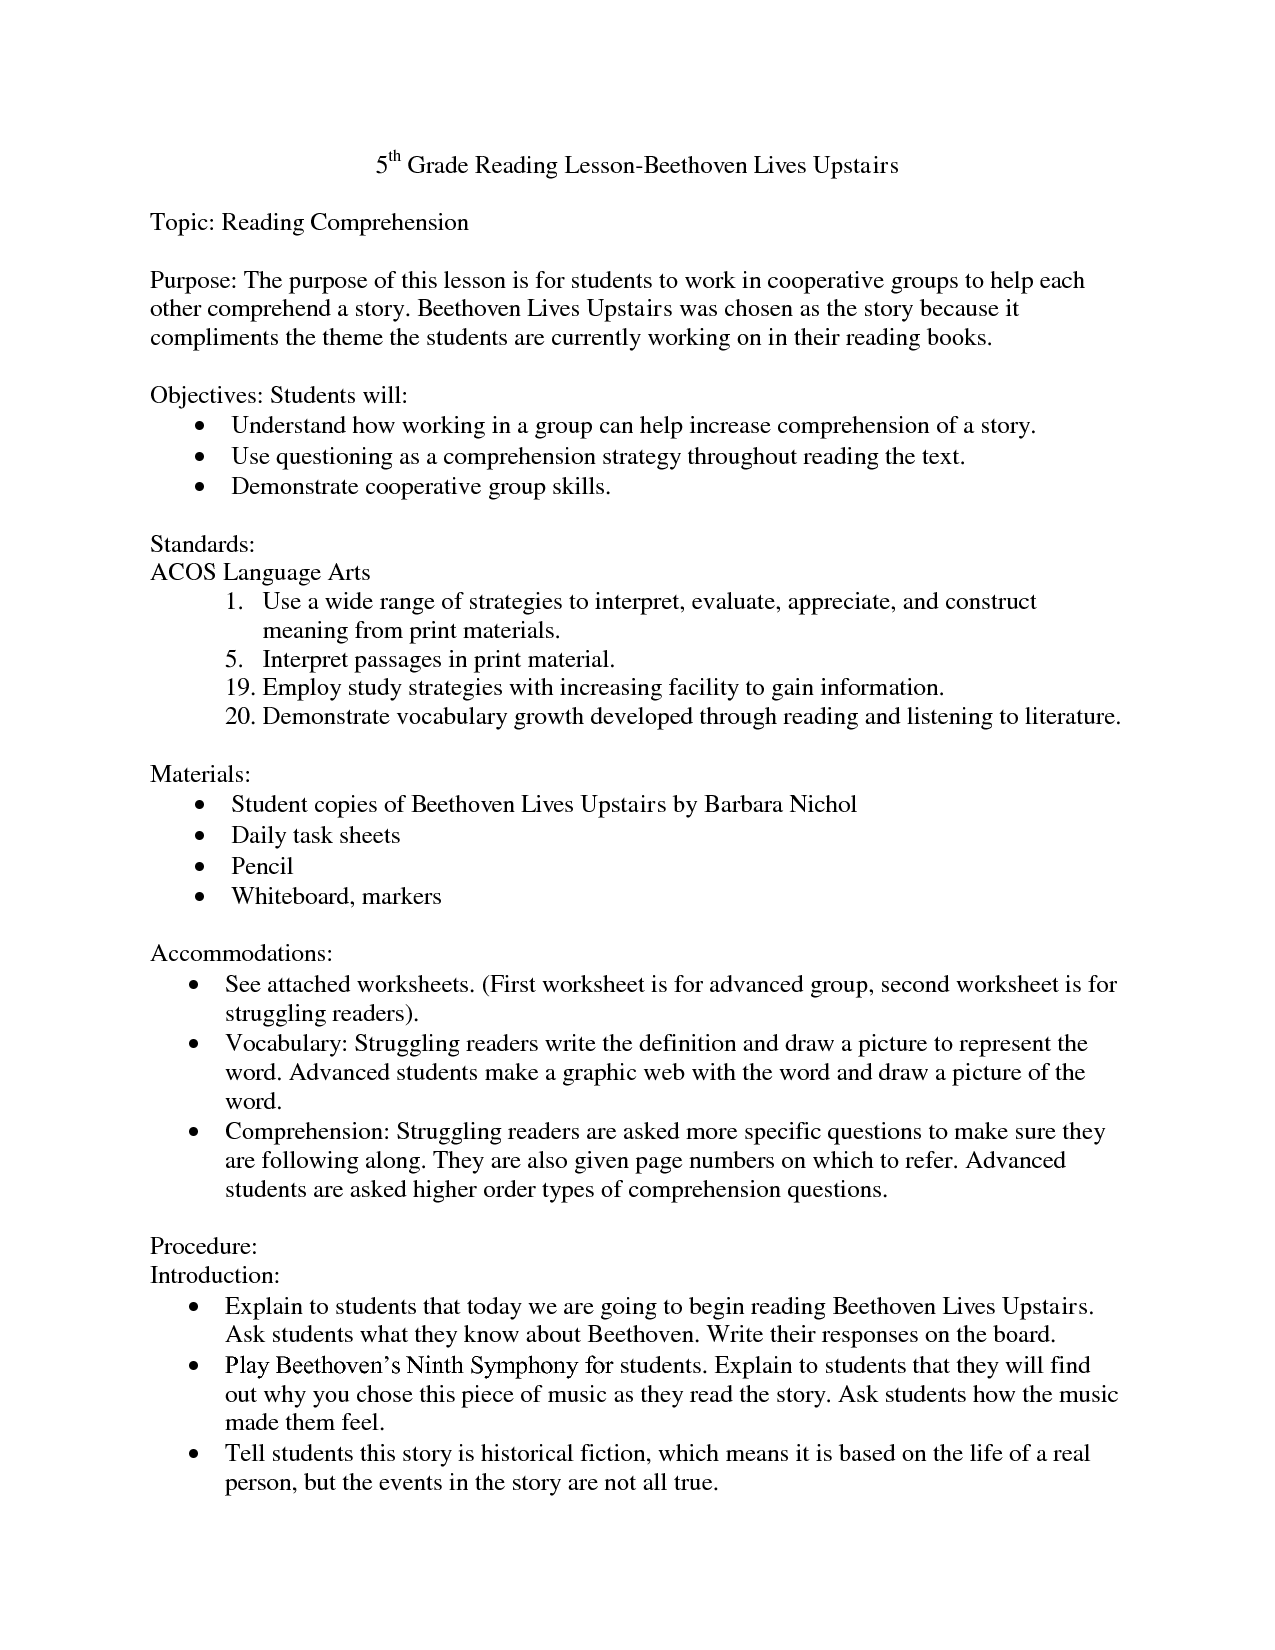 Worksheet Reading Activities For 5th Grade reading worksheets for 5th graders abitlikethis worksheet pages 4th grade 5 best images of worksheets